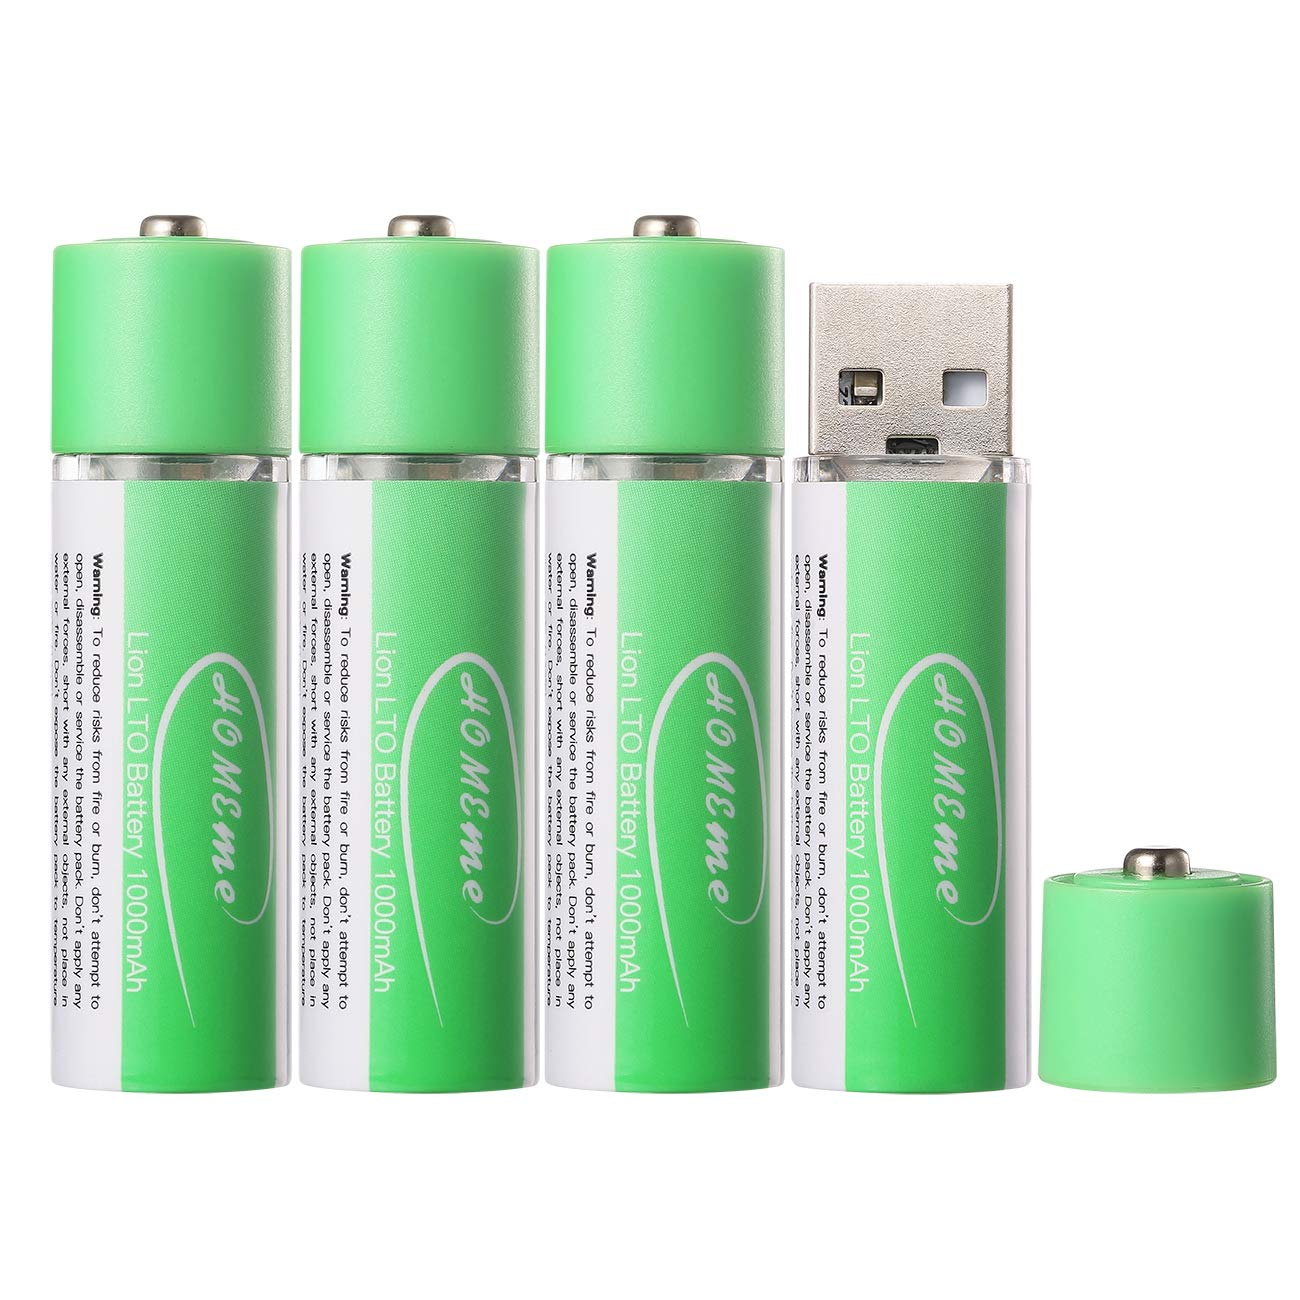 USB Rechargeable AA Lithium-ion Batteries 1.5V/1000mAH (Pack of 4) 1 Hour Fast Charging 1000 Recharge Cycles Reusable Double A Battery,UL Listed,Green